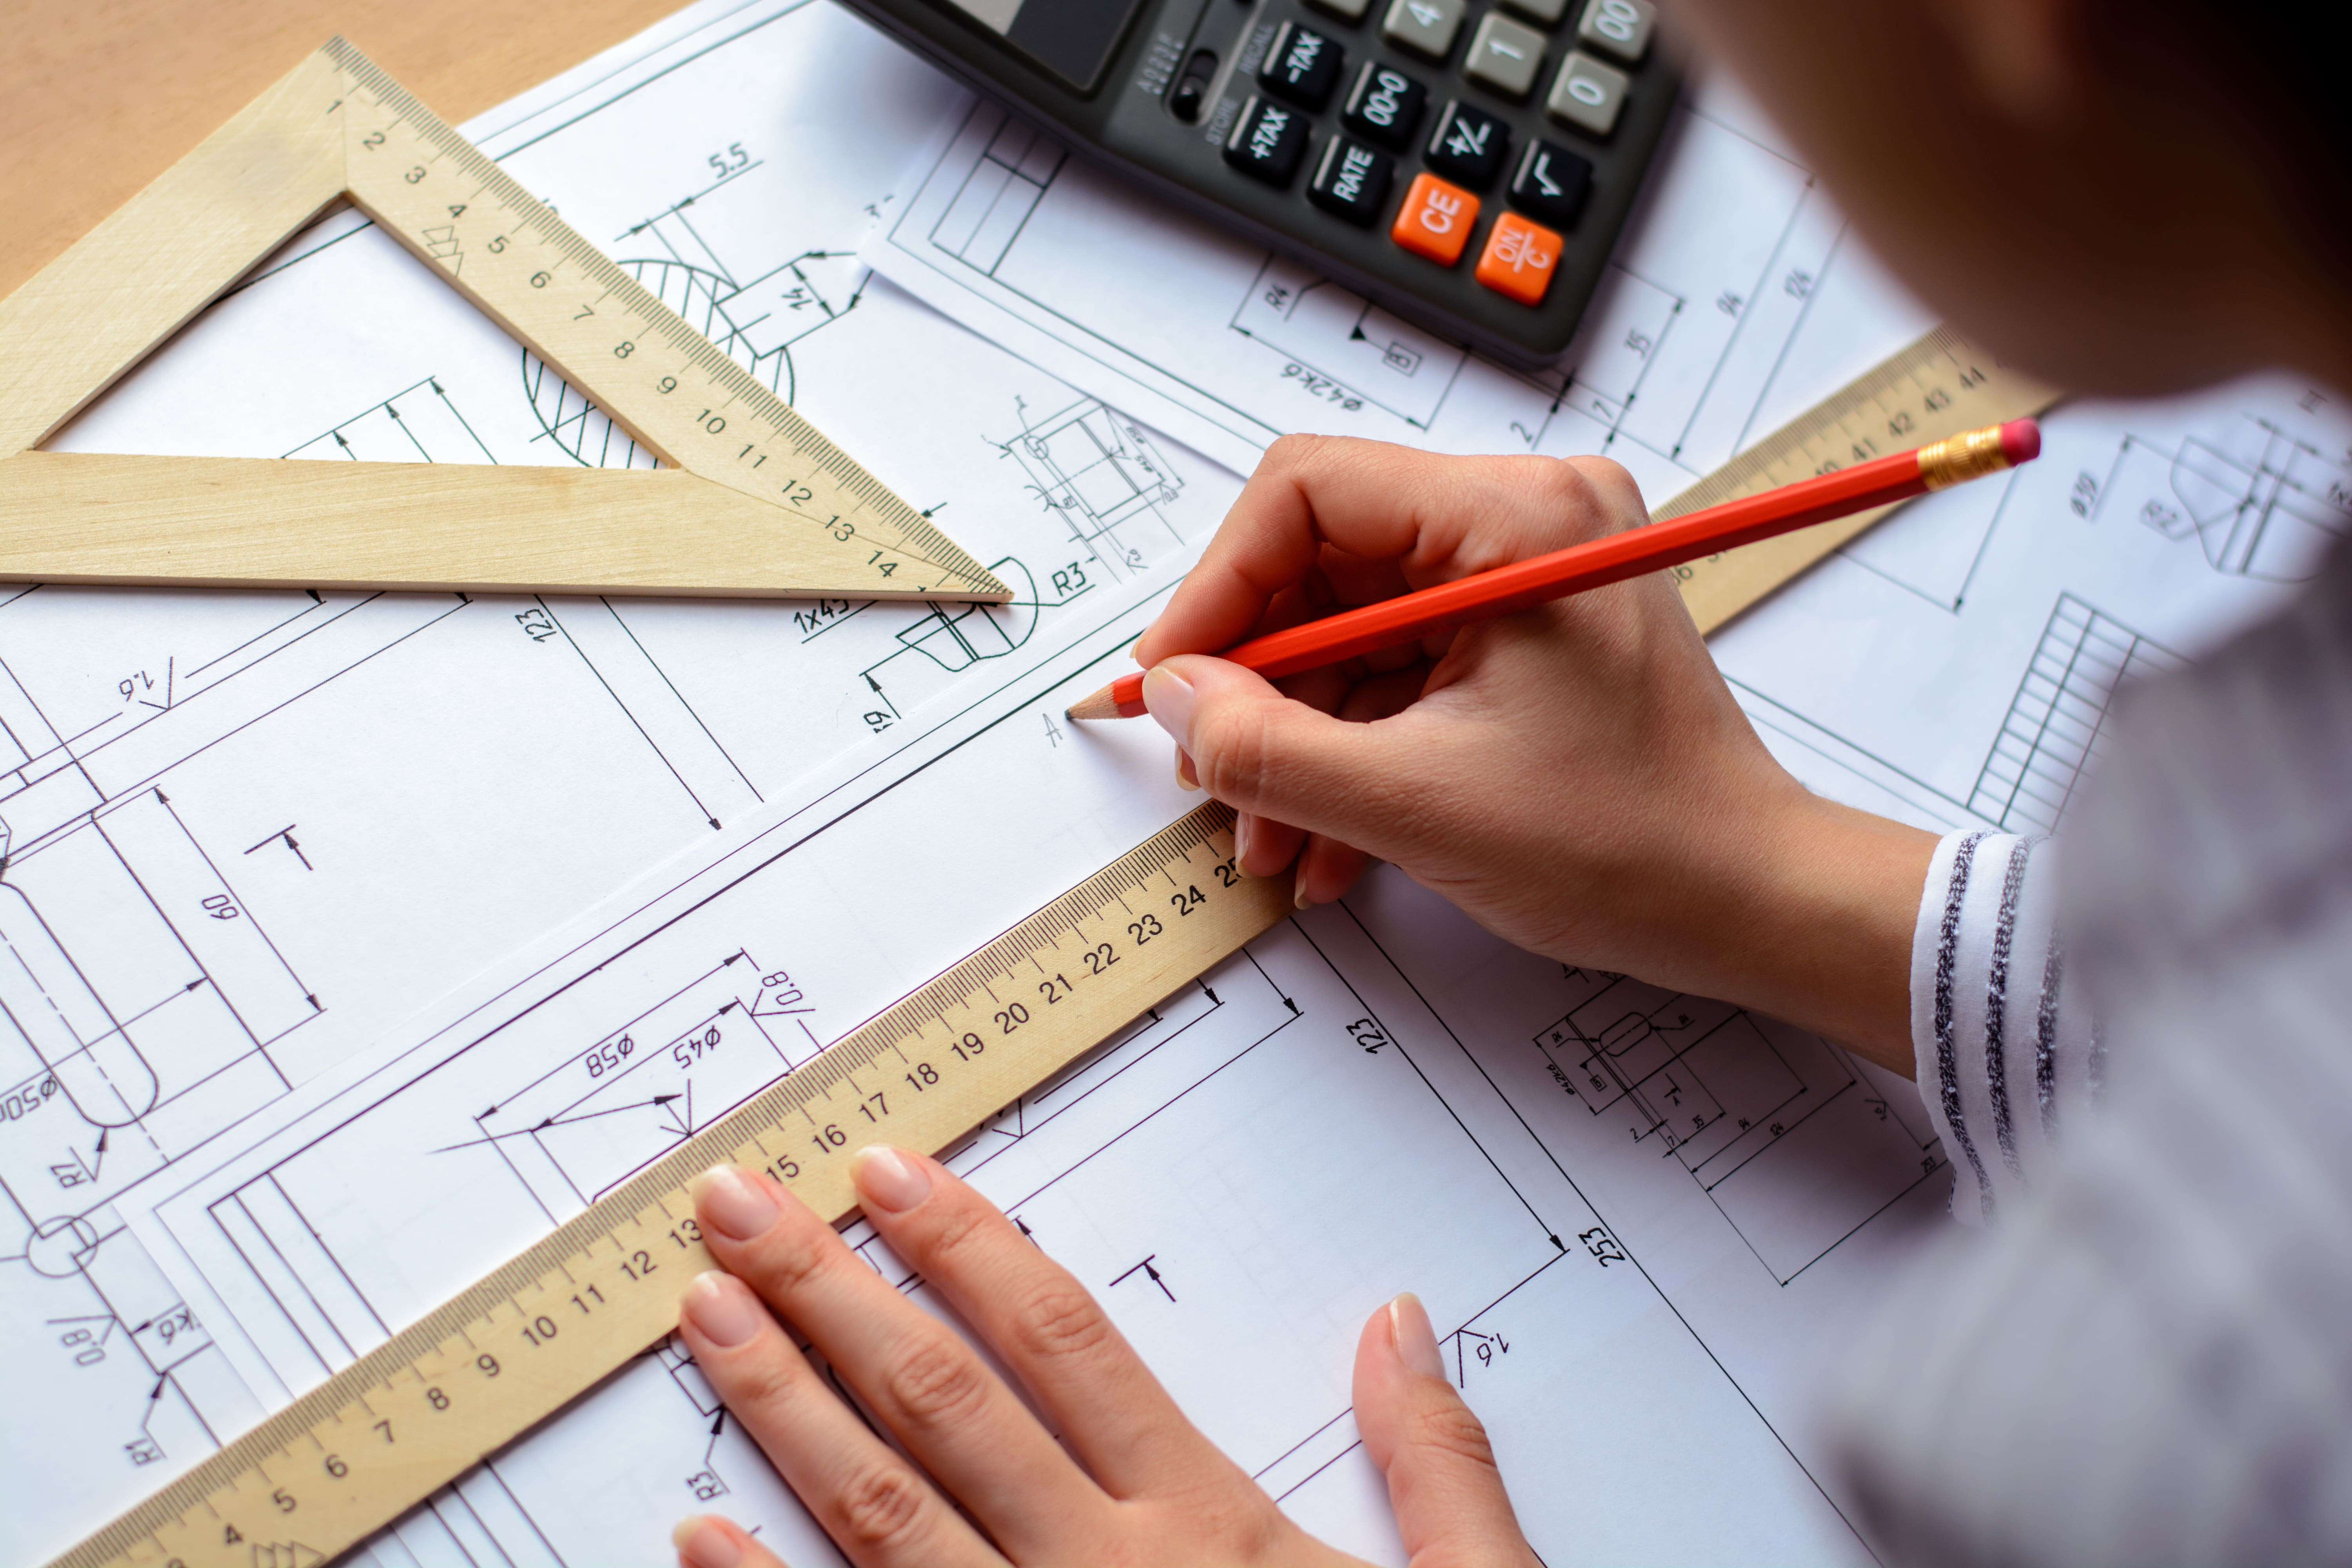 Architect with his hands over blueprint